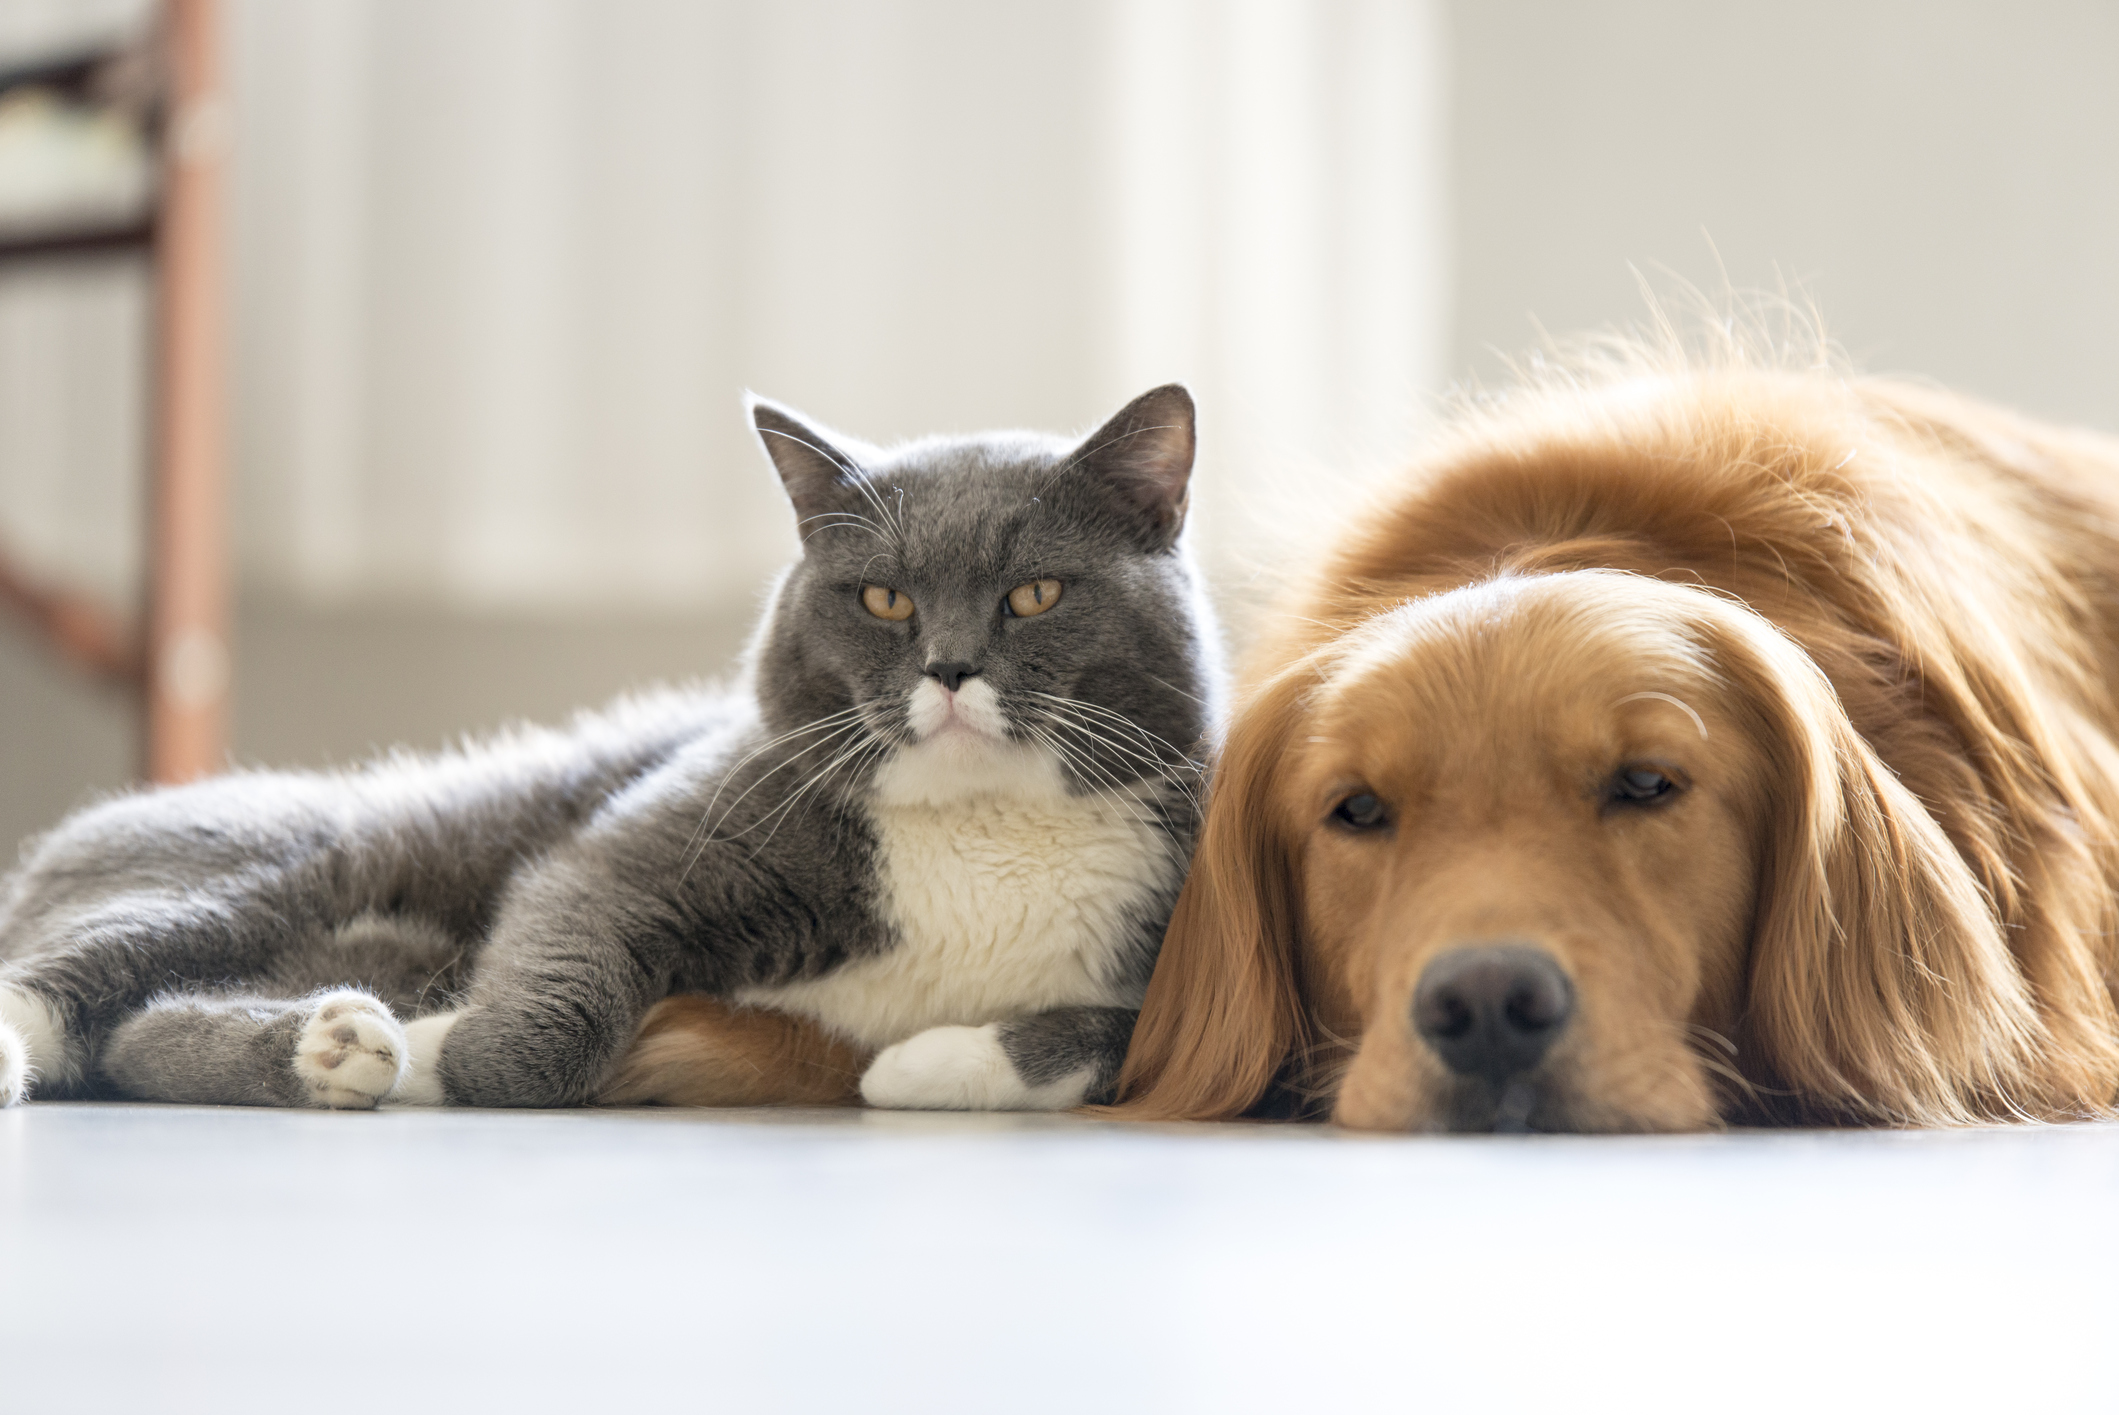 Brown dog and gray cat laying on ground.